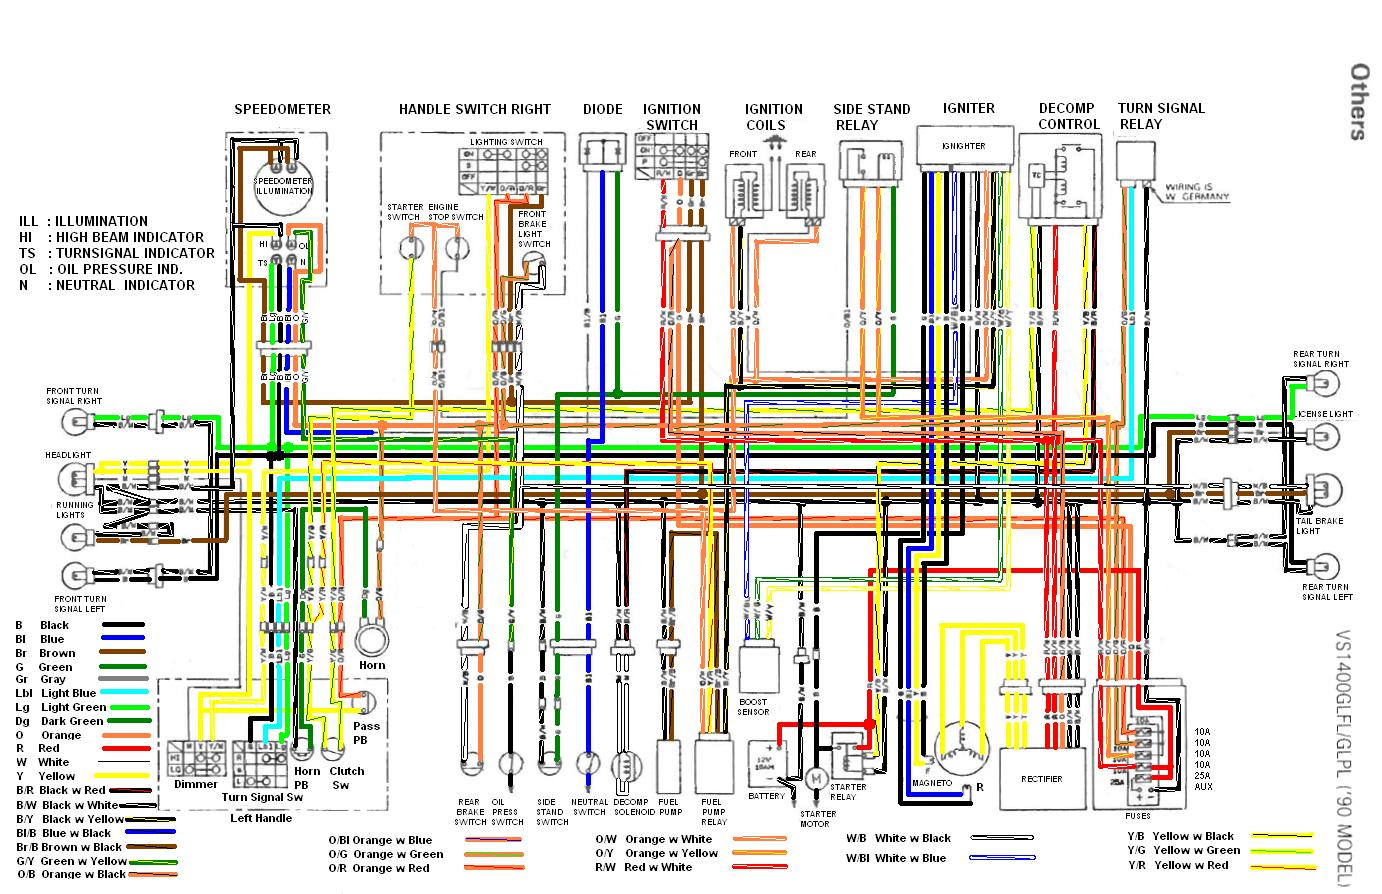 colored wiring diagram colored wiring diagrams online colored wiring diagram